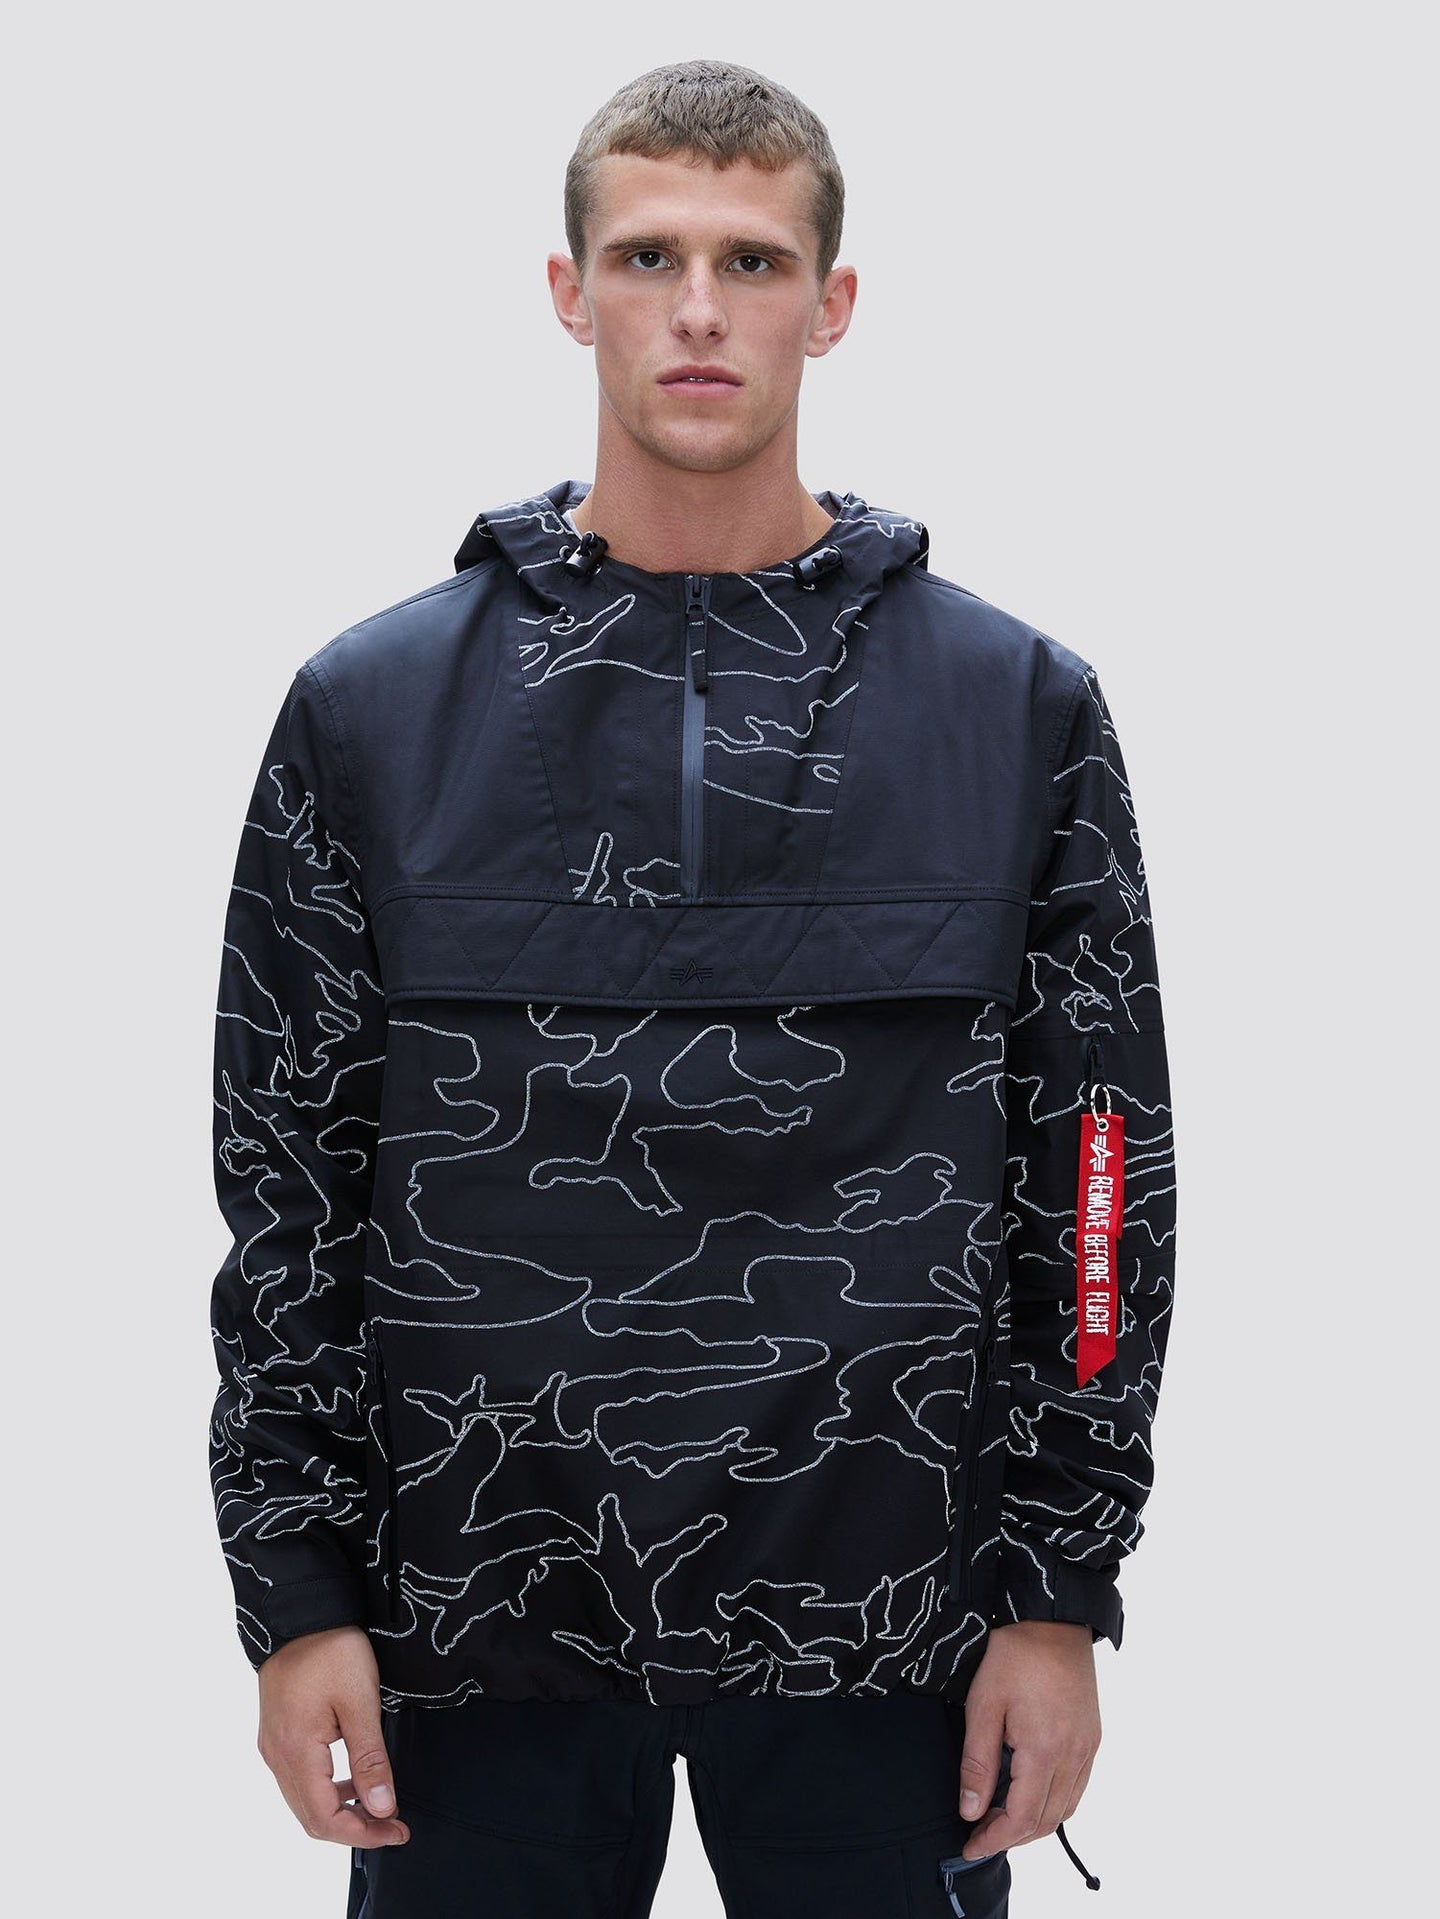 RIPSTOP ANORAK SALE Alpha Industries REFLECTIVE BLACK CAMO 2XL